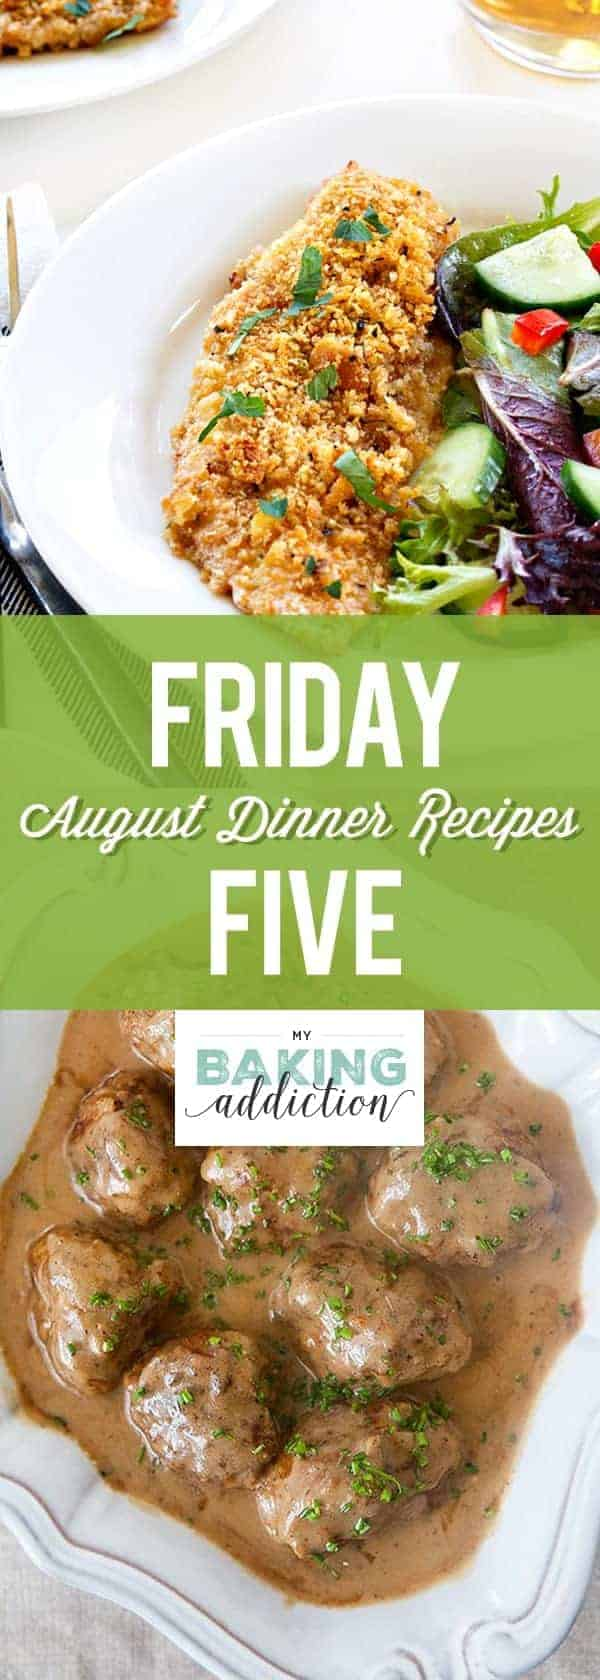 Friday Five: Our favorite meals from the month of August! I've taken the guess work out of meal planning by testing recipes for you and then letting you know our thoughts. Easy peasy, right?